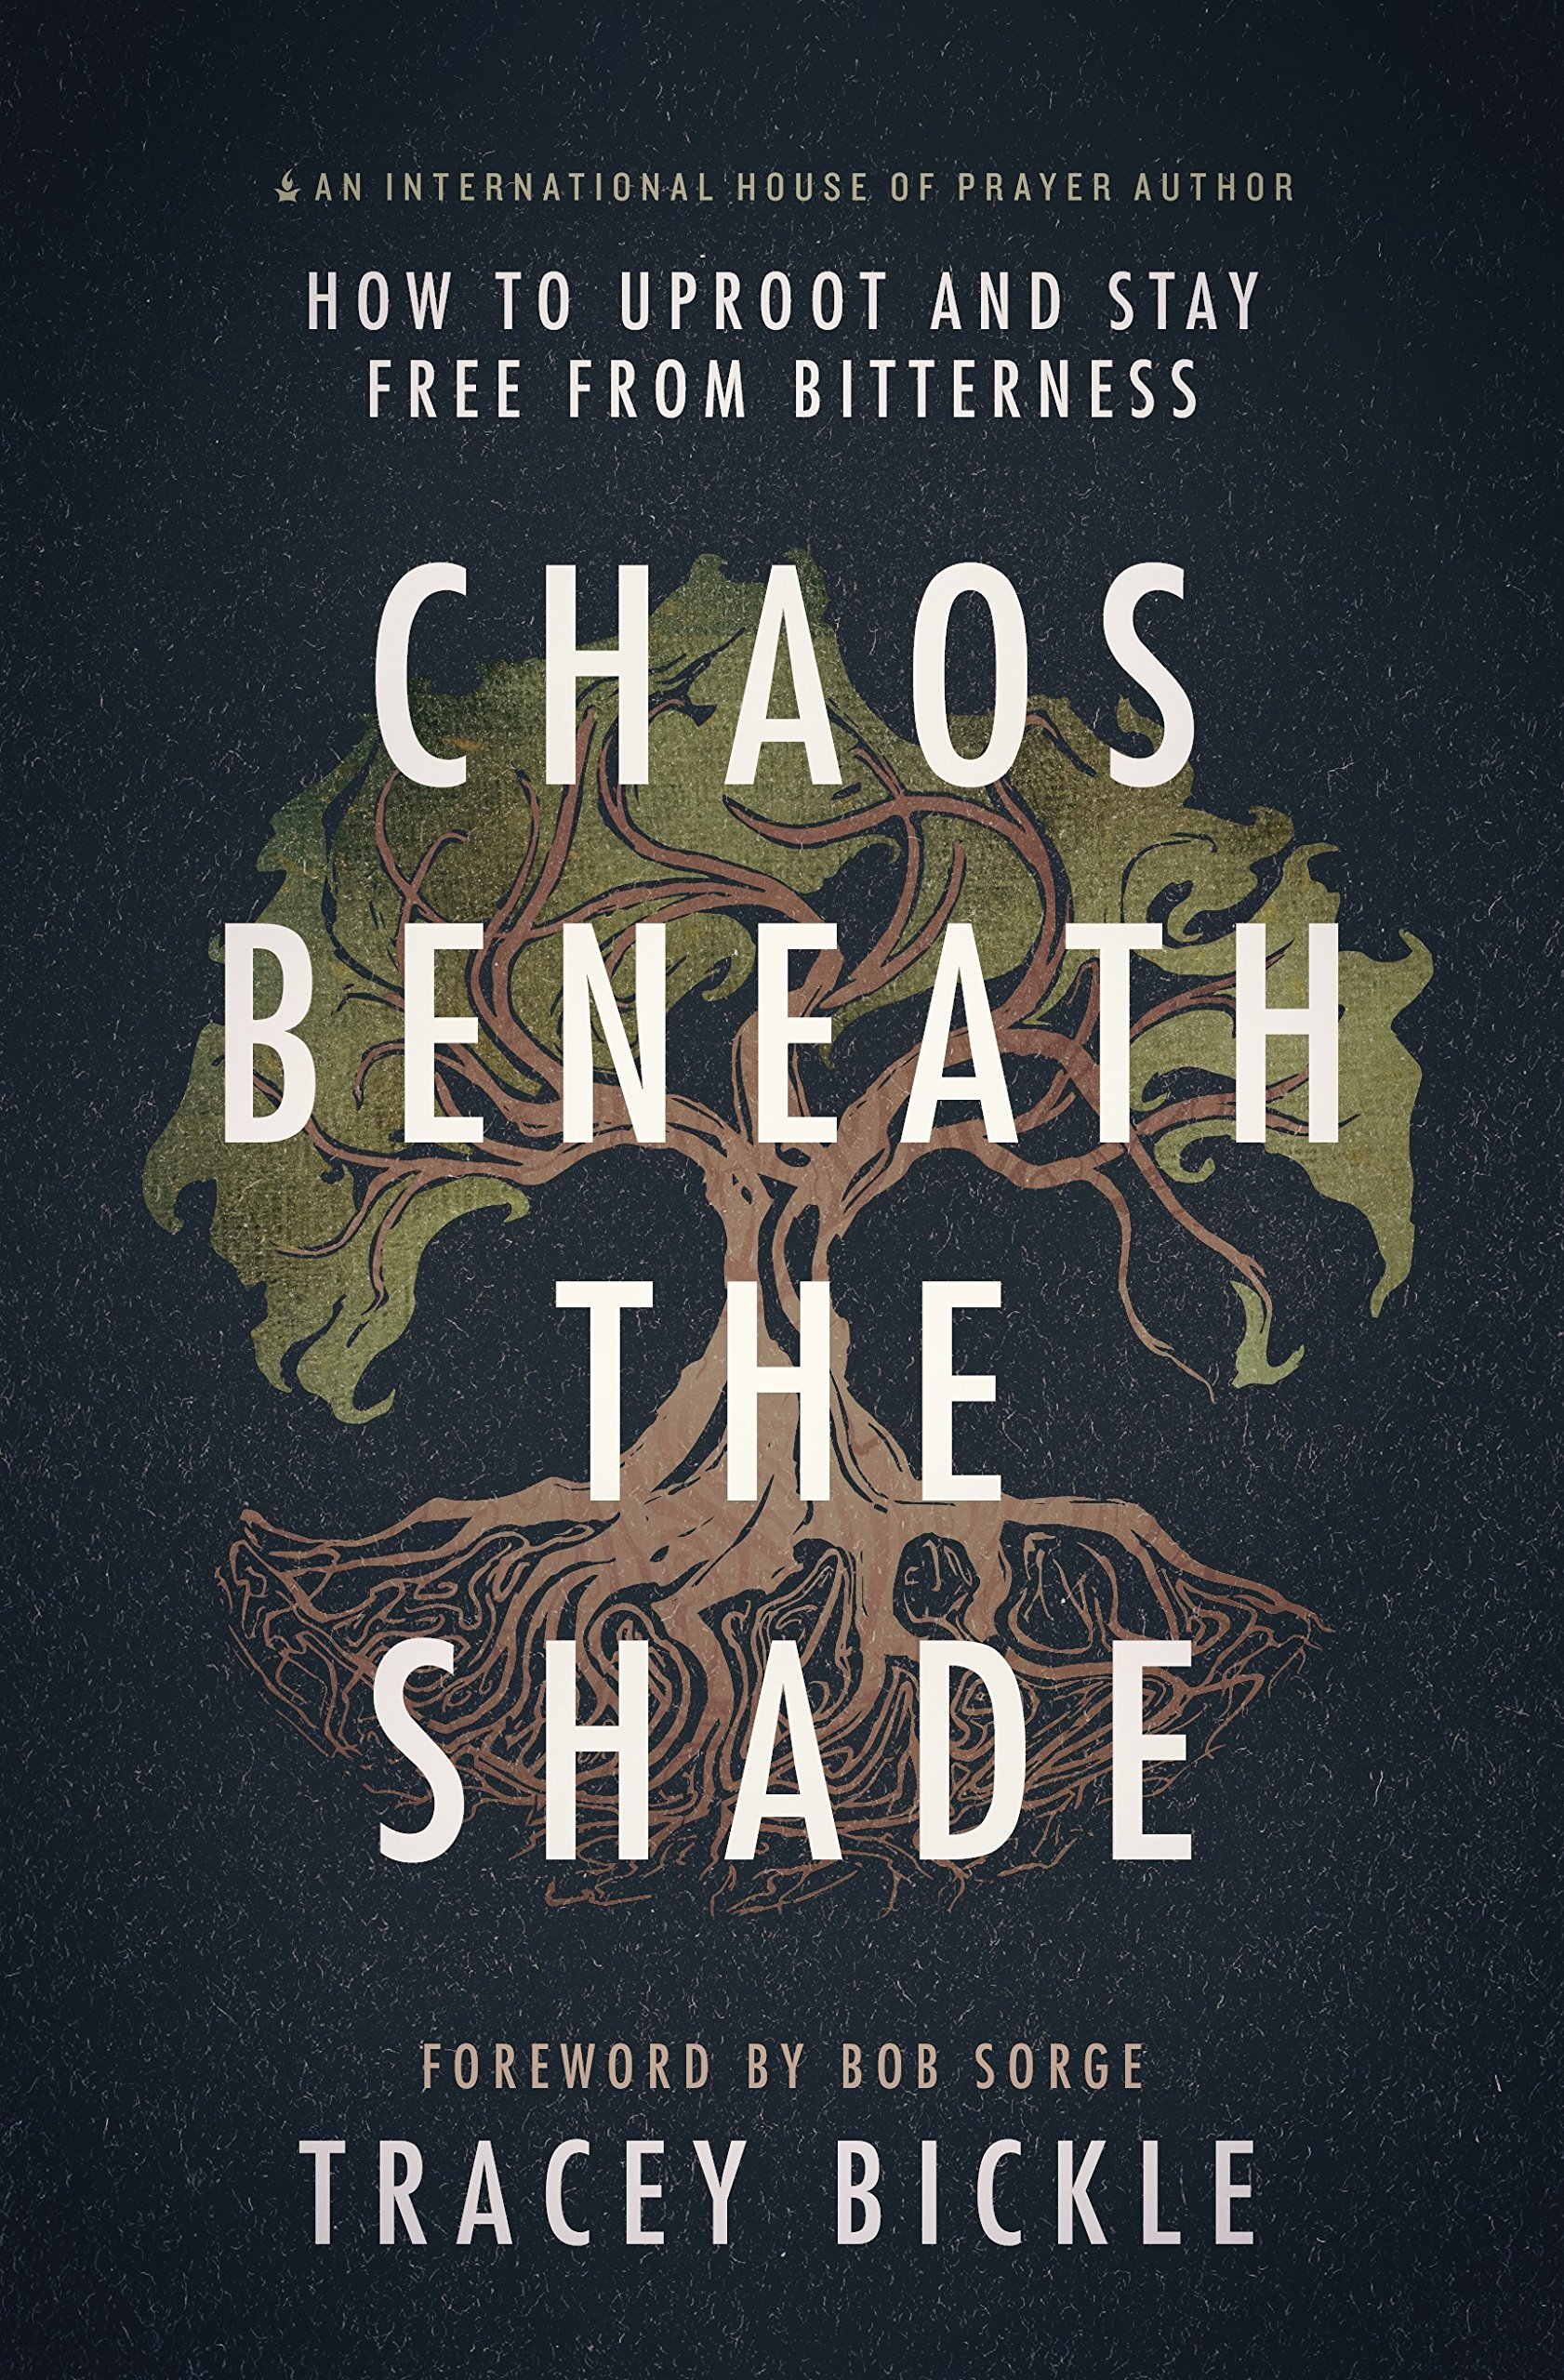 Download Chaos Beneath The Shade: How To Uproot And Stay Free From Bitterness PDF